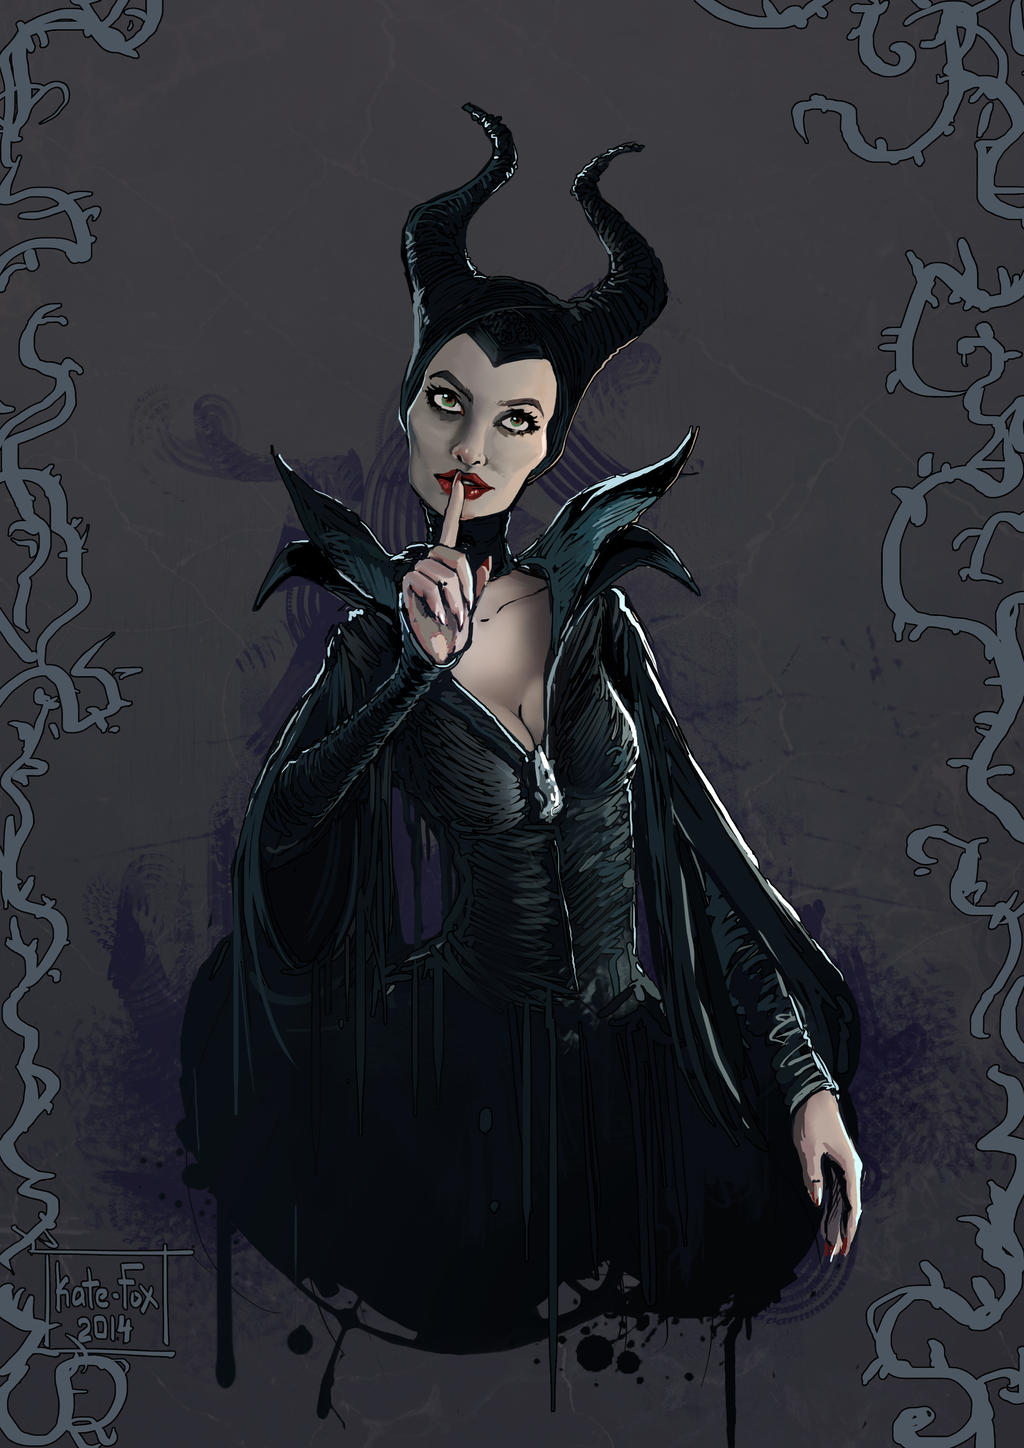 Maleficent Artwork Images Reverse Search